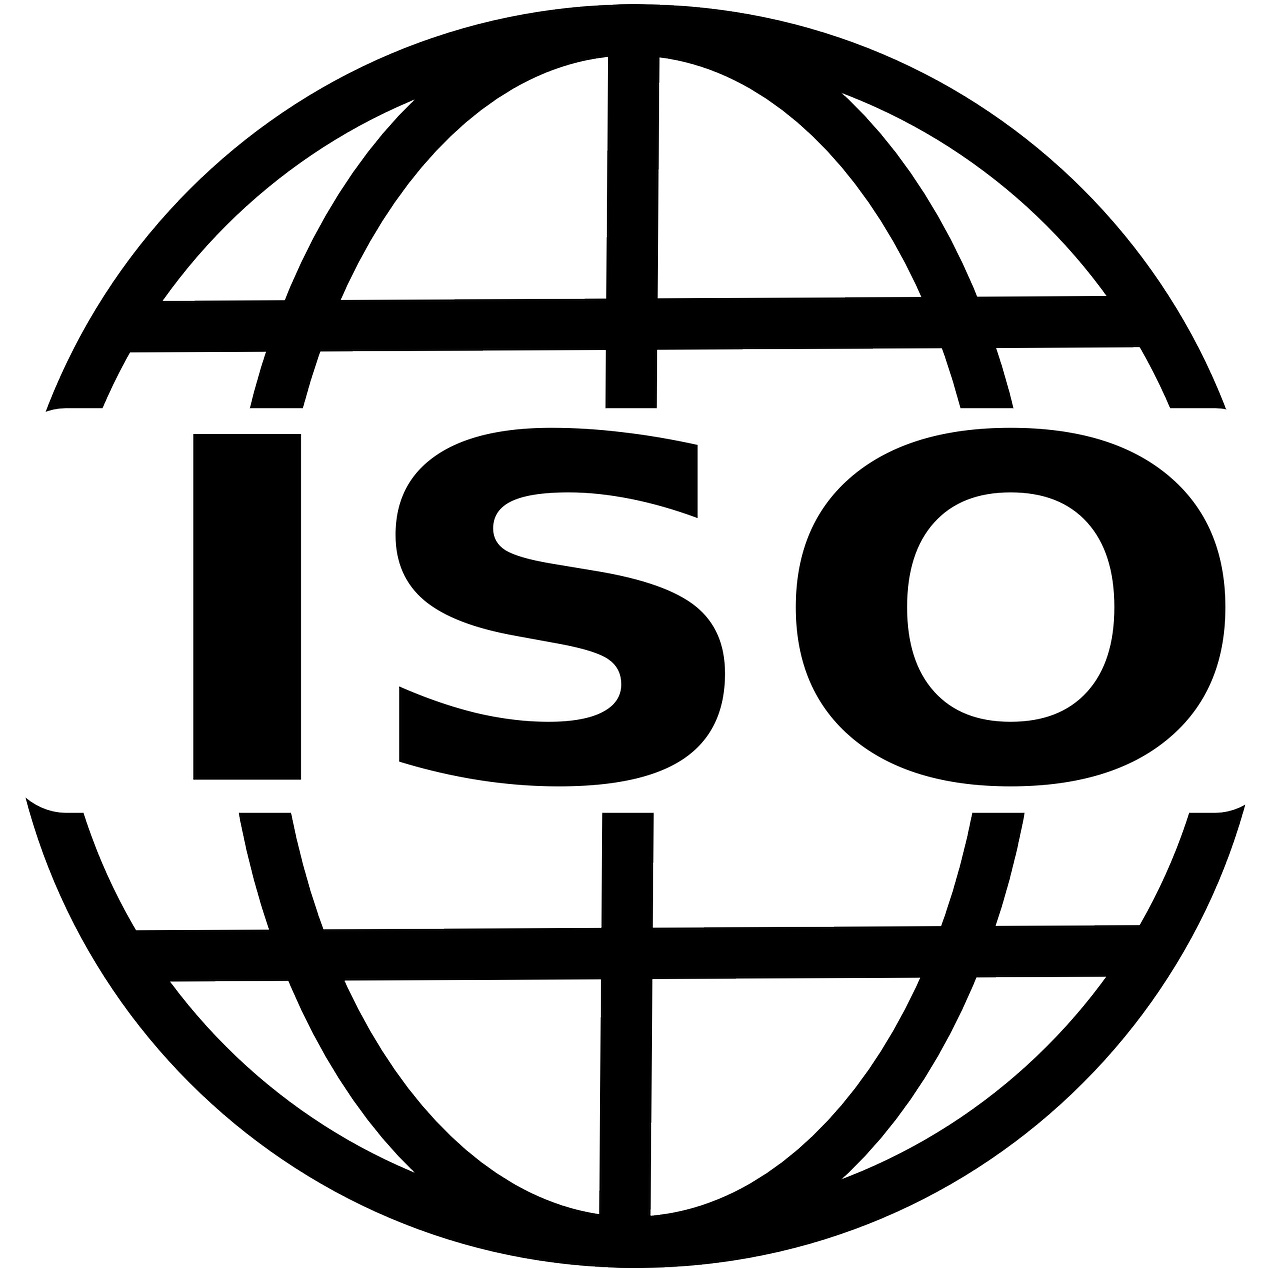 an introduction to the benefits of tqm and iso9002 quality standards